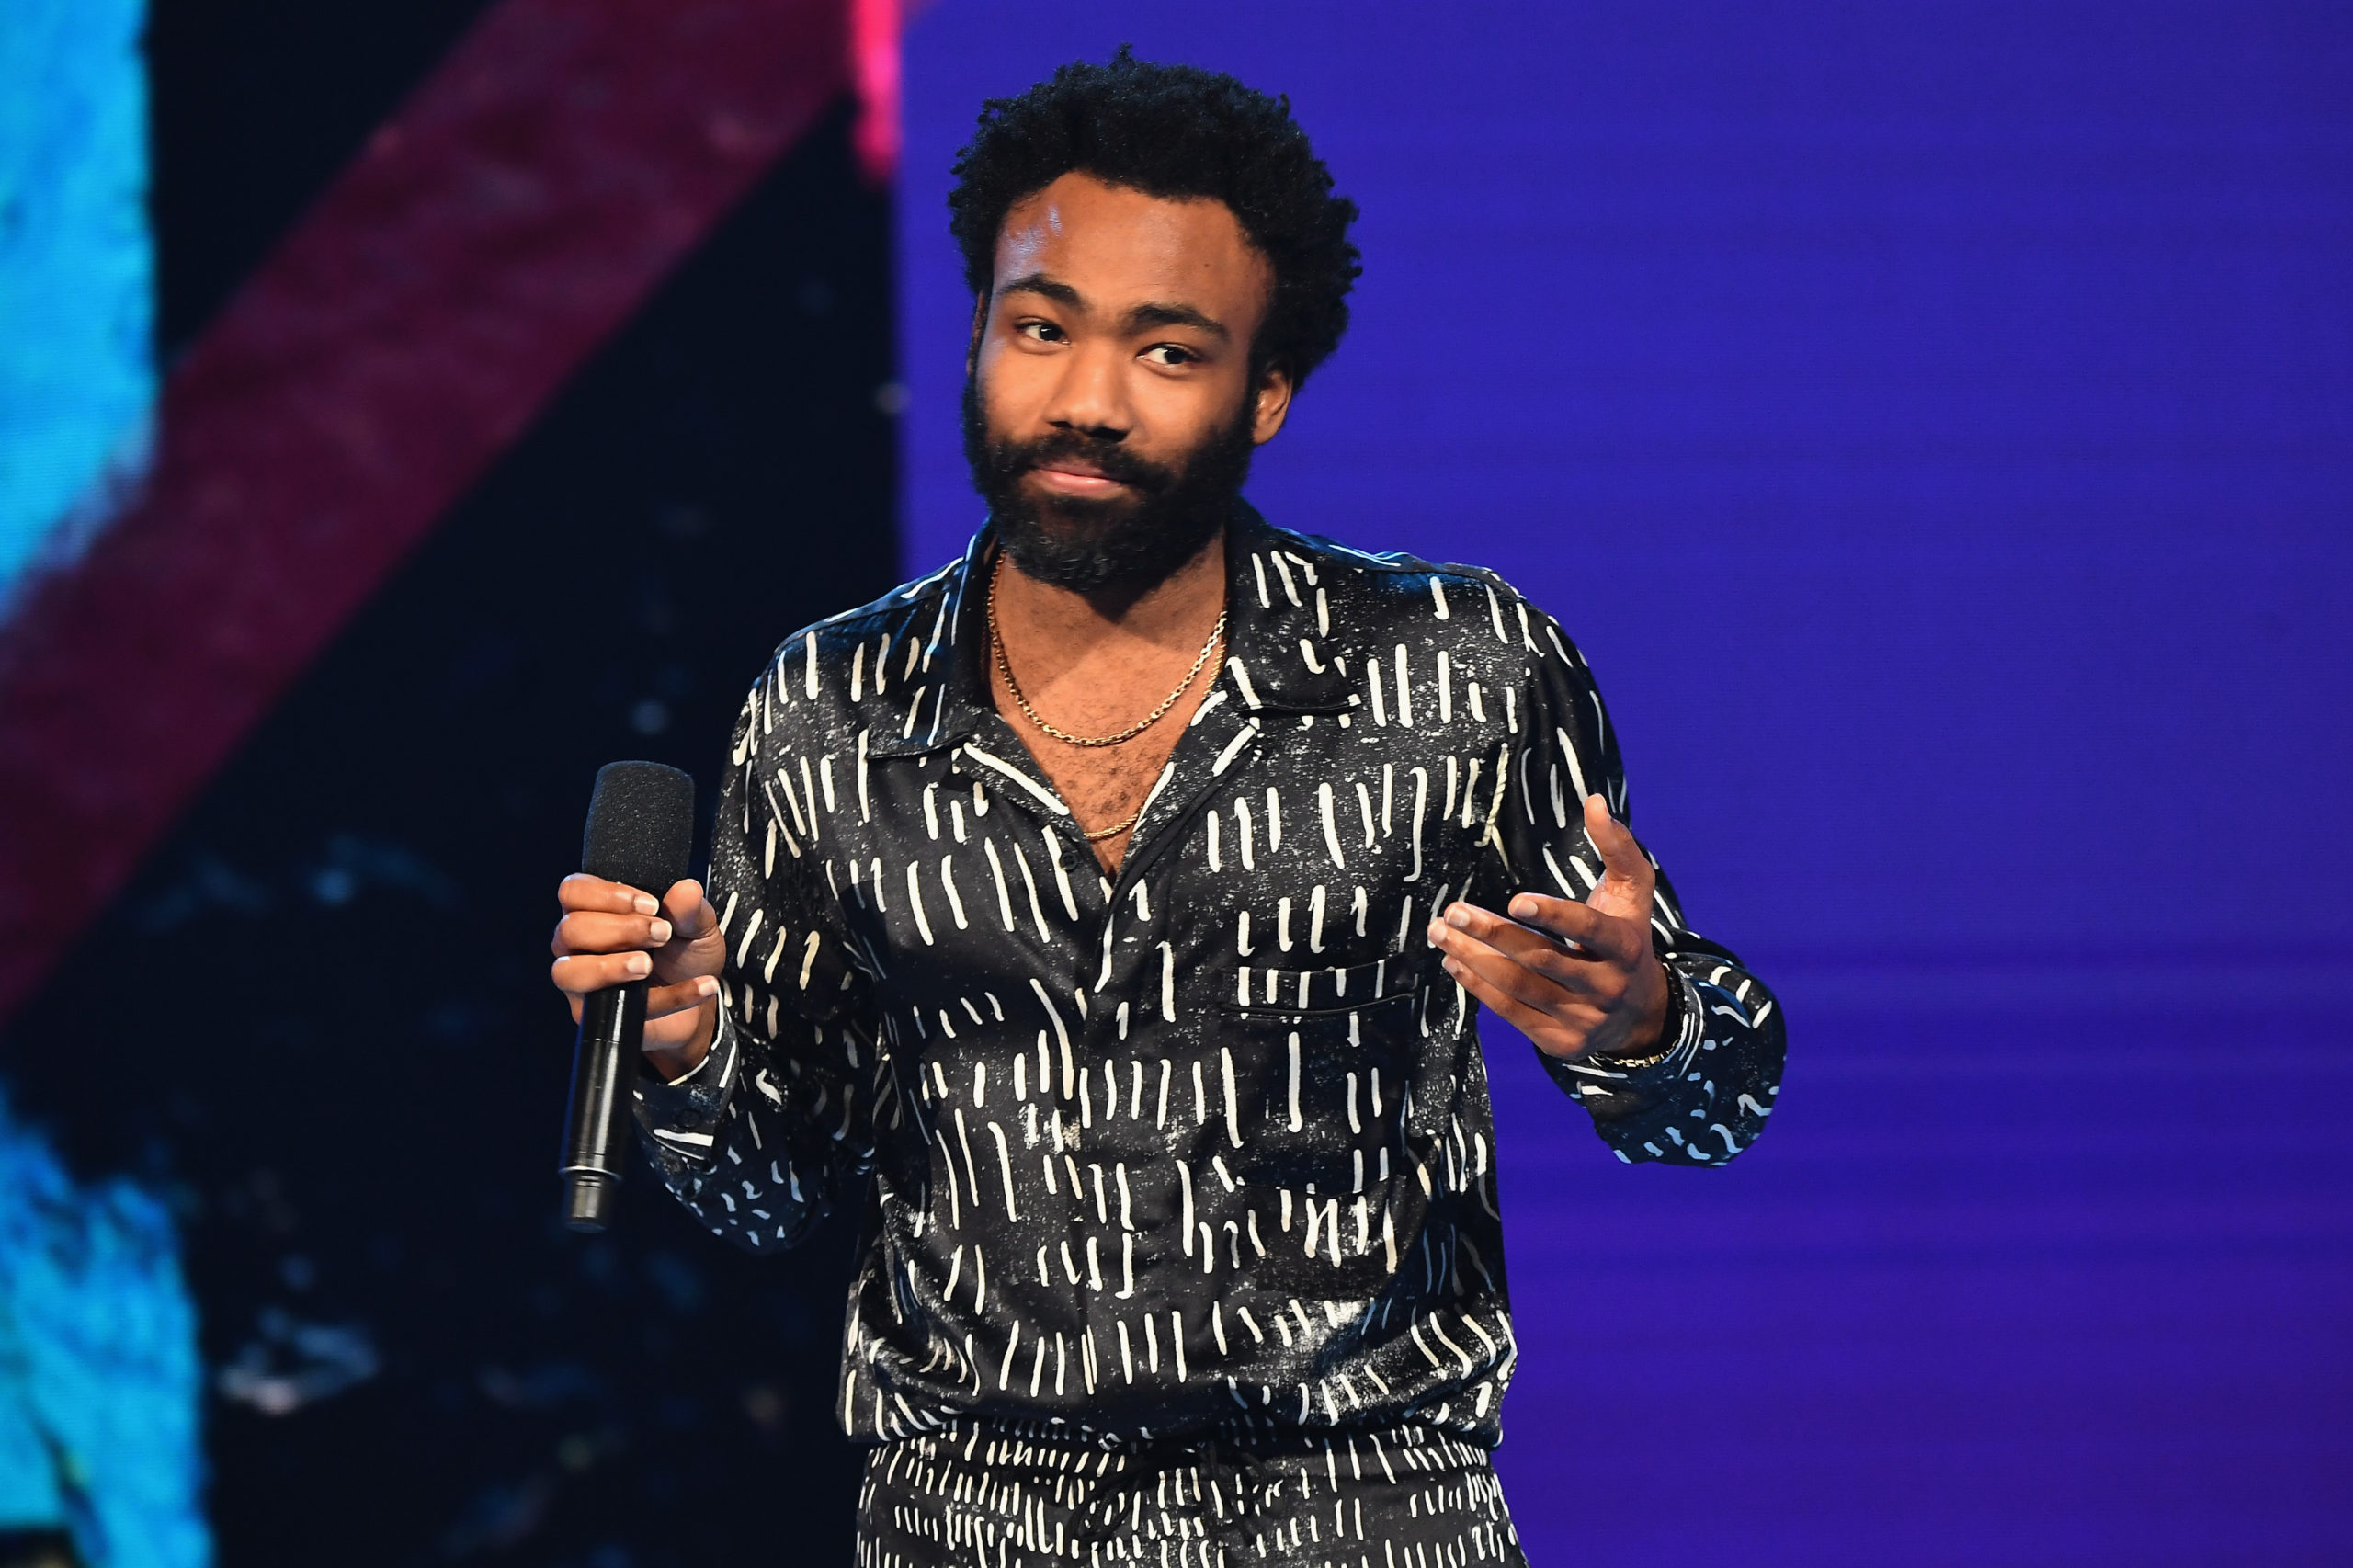 Donald Glover spoke about not wanting to label his sexuality